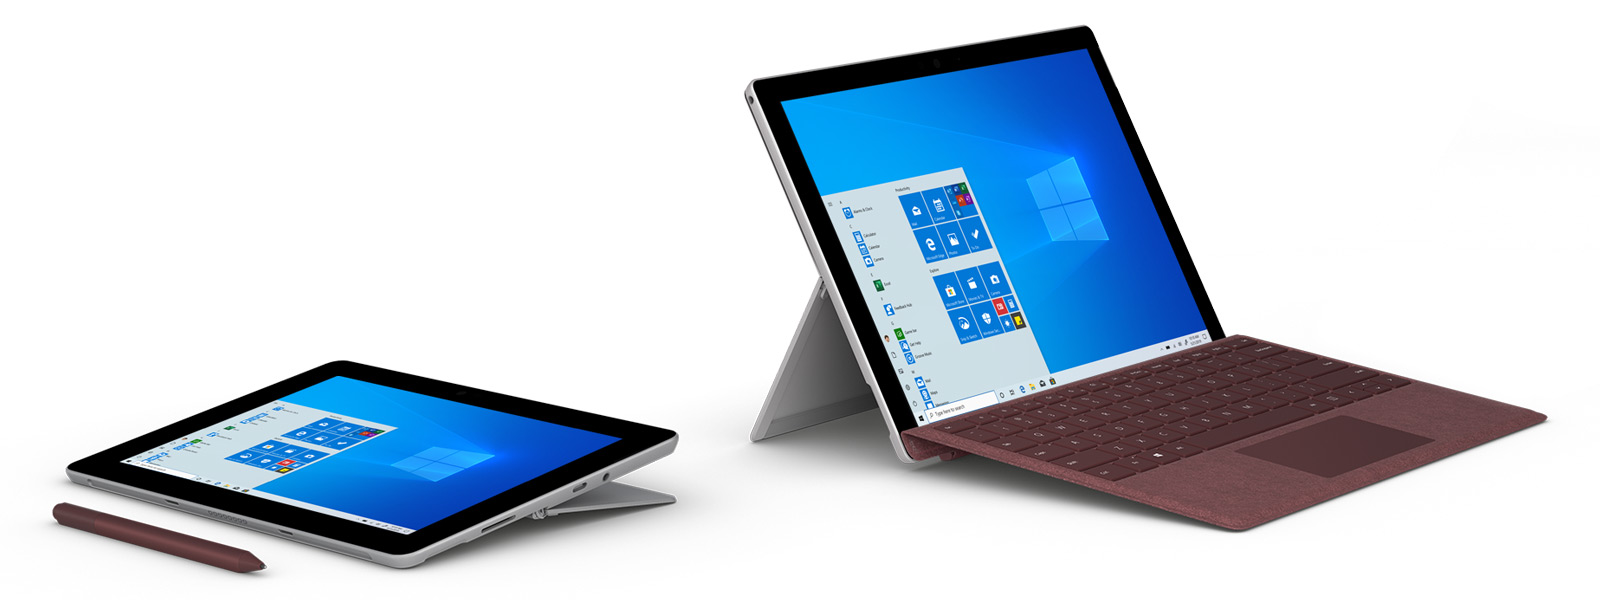 Two Surface Go computers site next to each other.  One is shown laying almost flat with a pen in front of it and a Windows 10 start screen.  The other sits with a keyboard attached and a Windows 10 start screen.